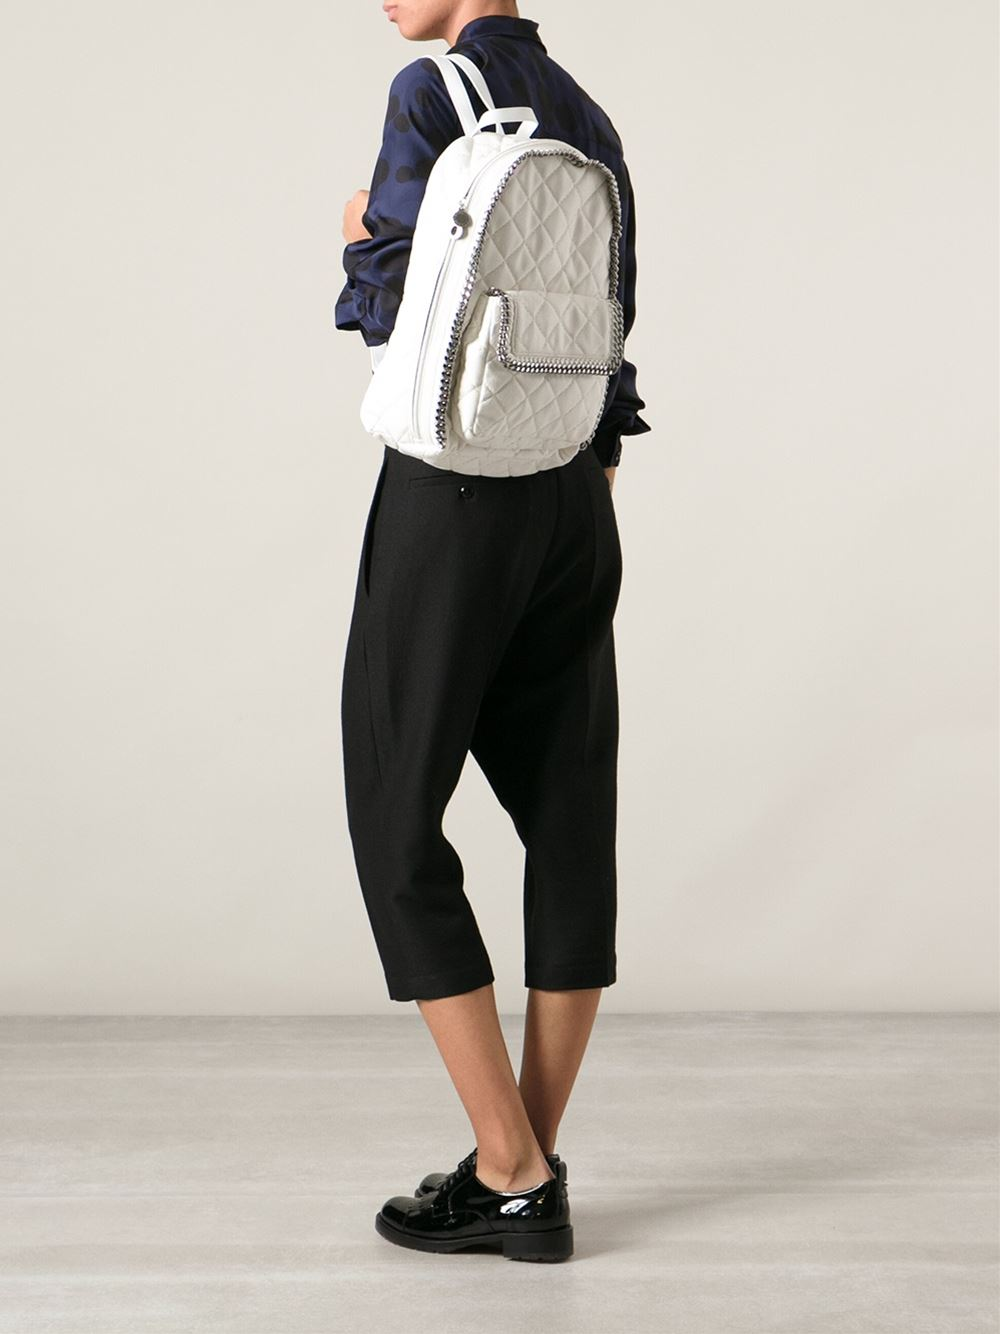 Bagstowear_Stella_McCartney_White_Backpacks